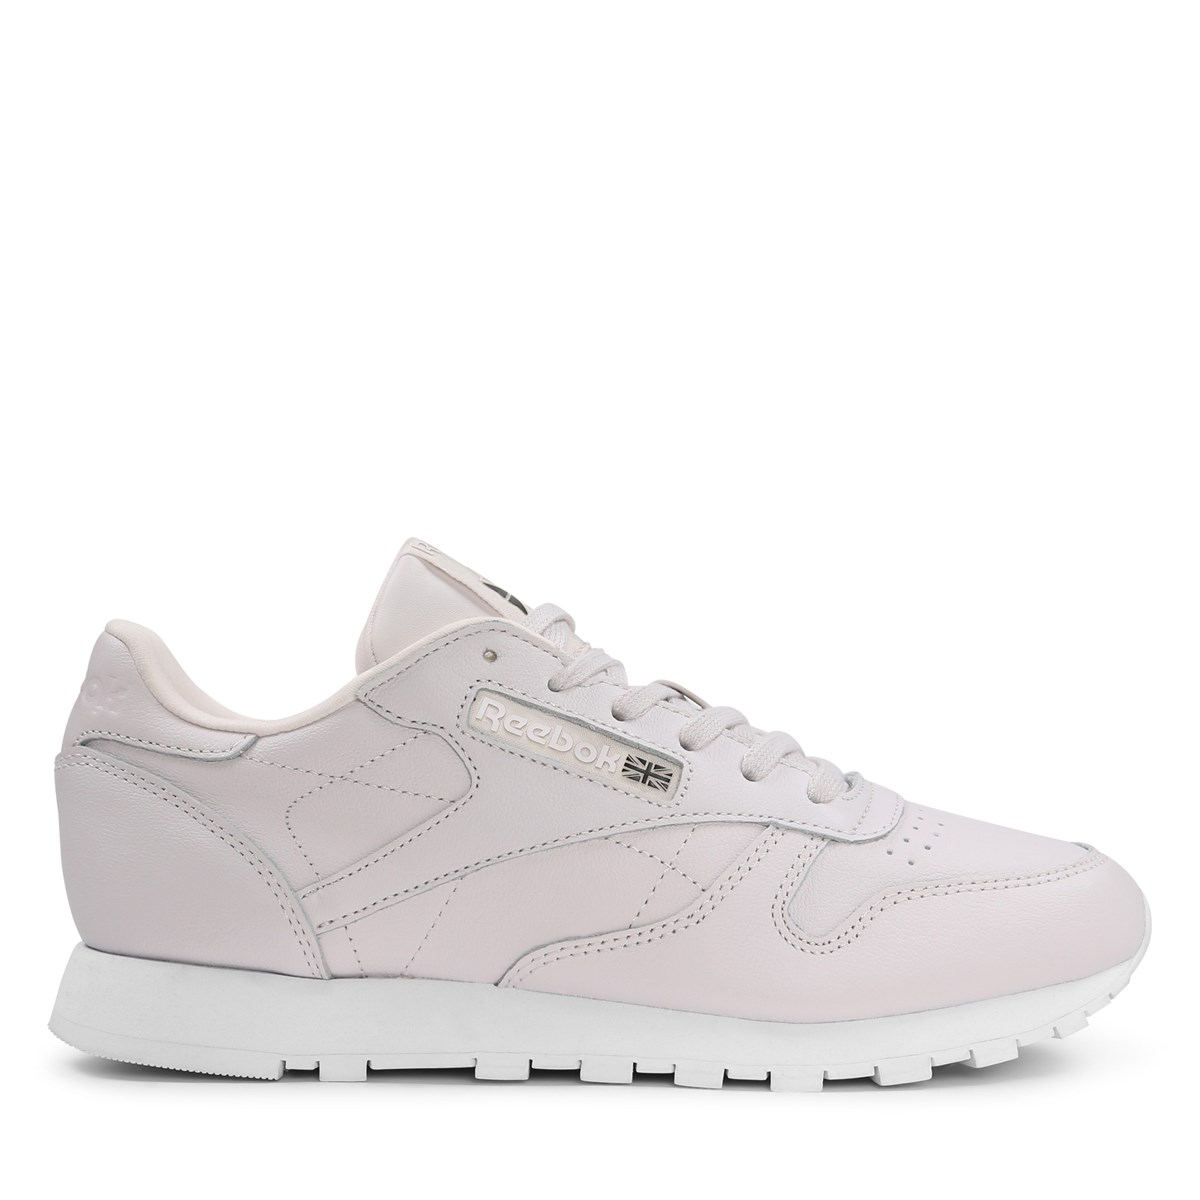 fbe12750df7b5 Women s Reebok X FACE Stockholm Classic leather Sneaker. Previous. default  view ...